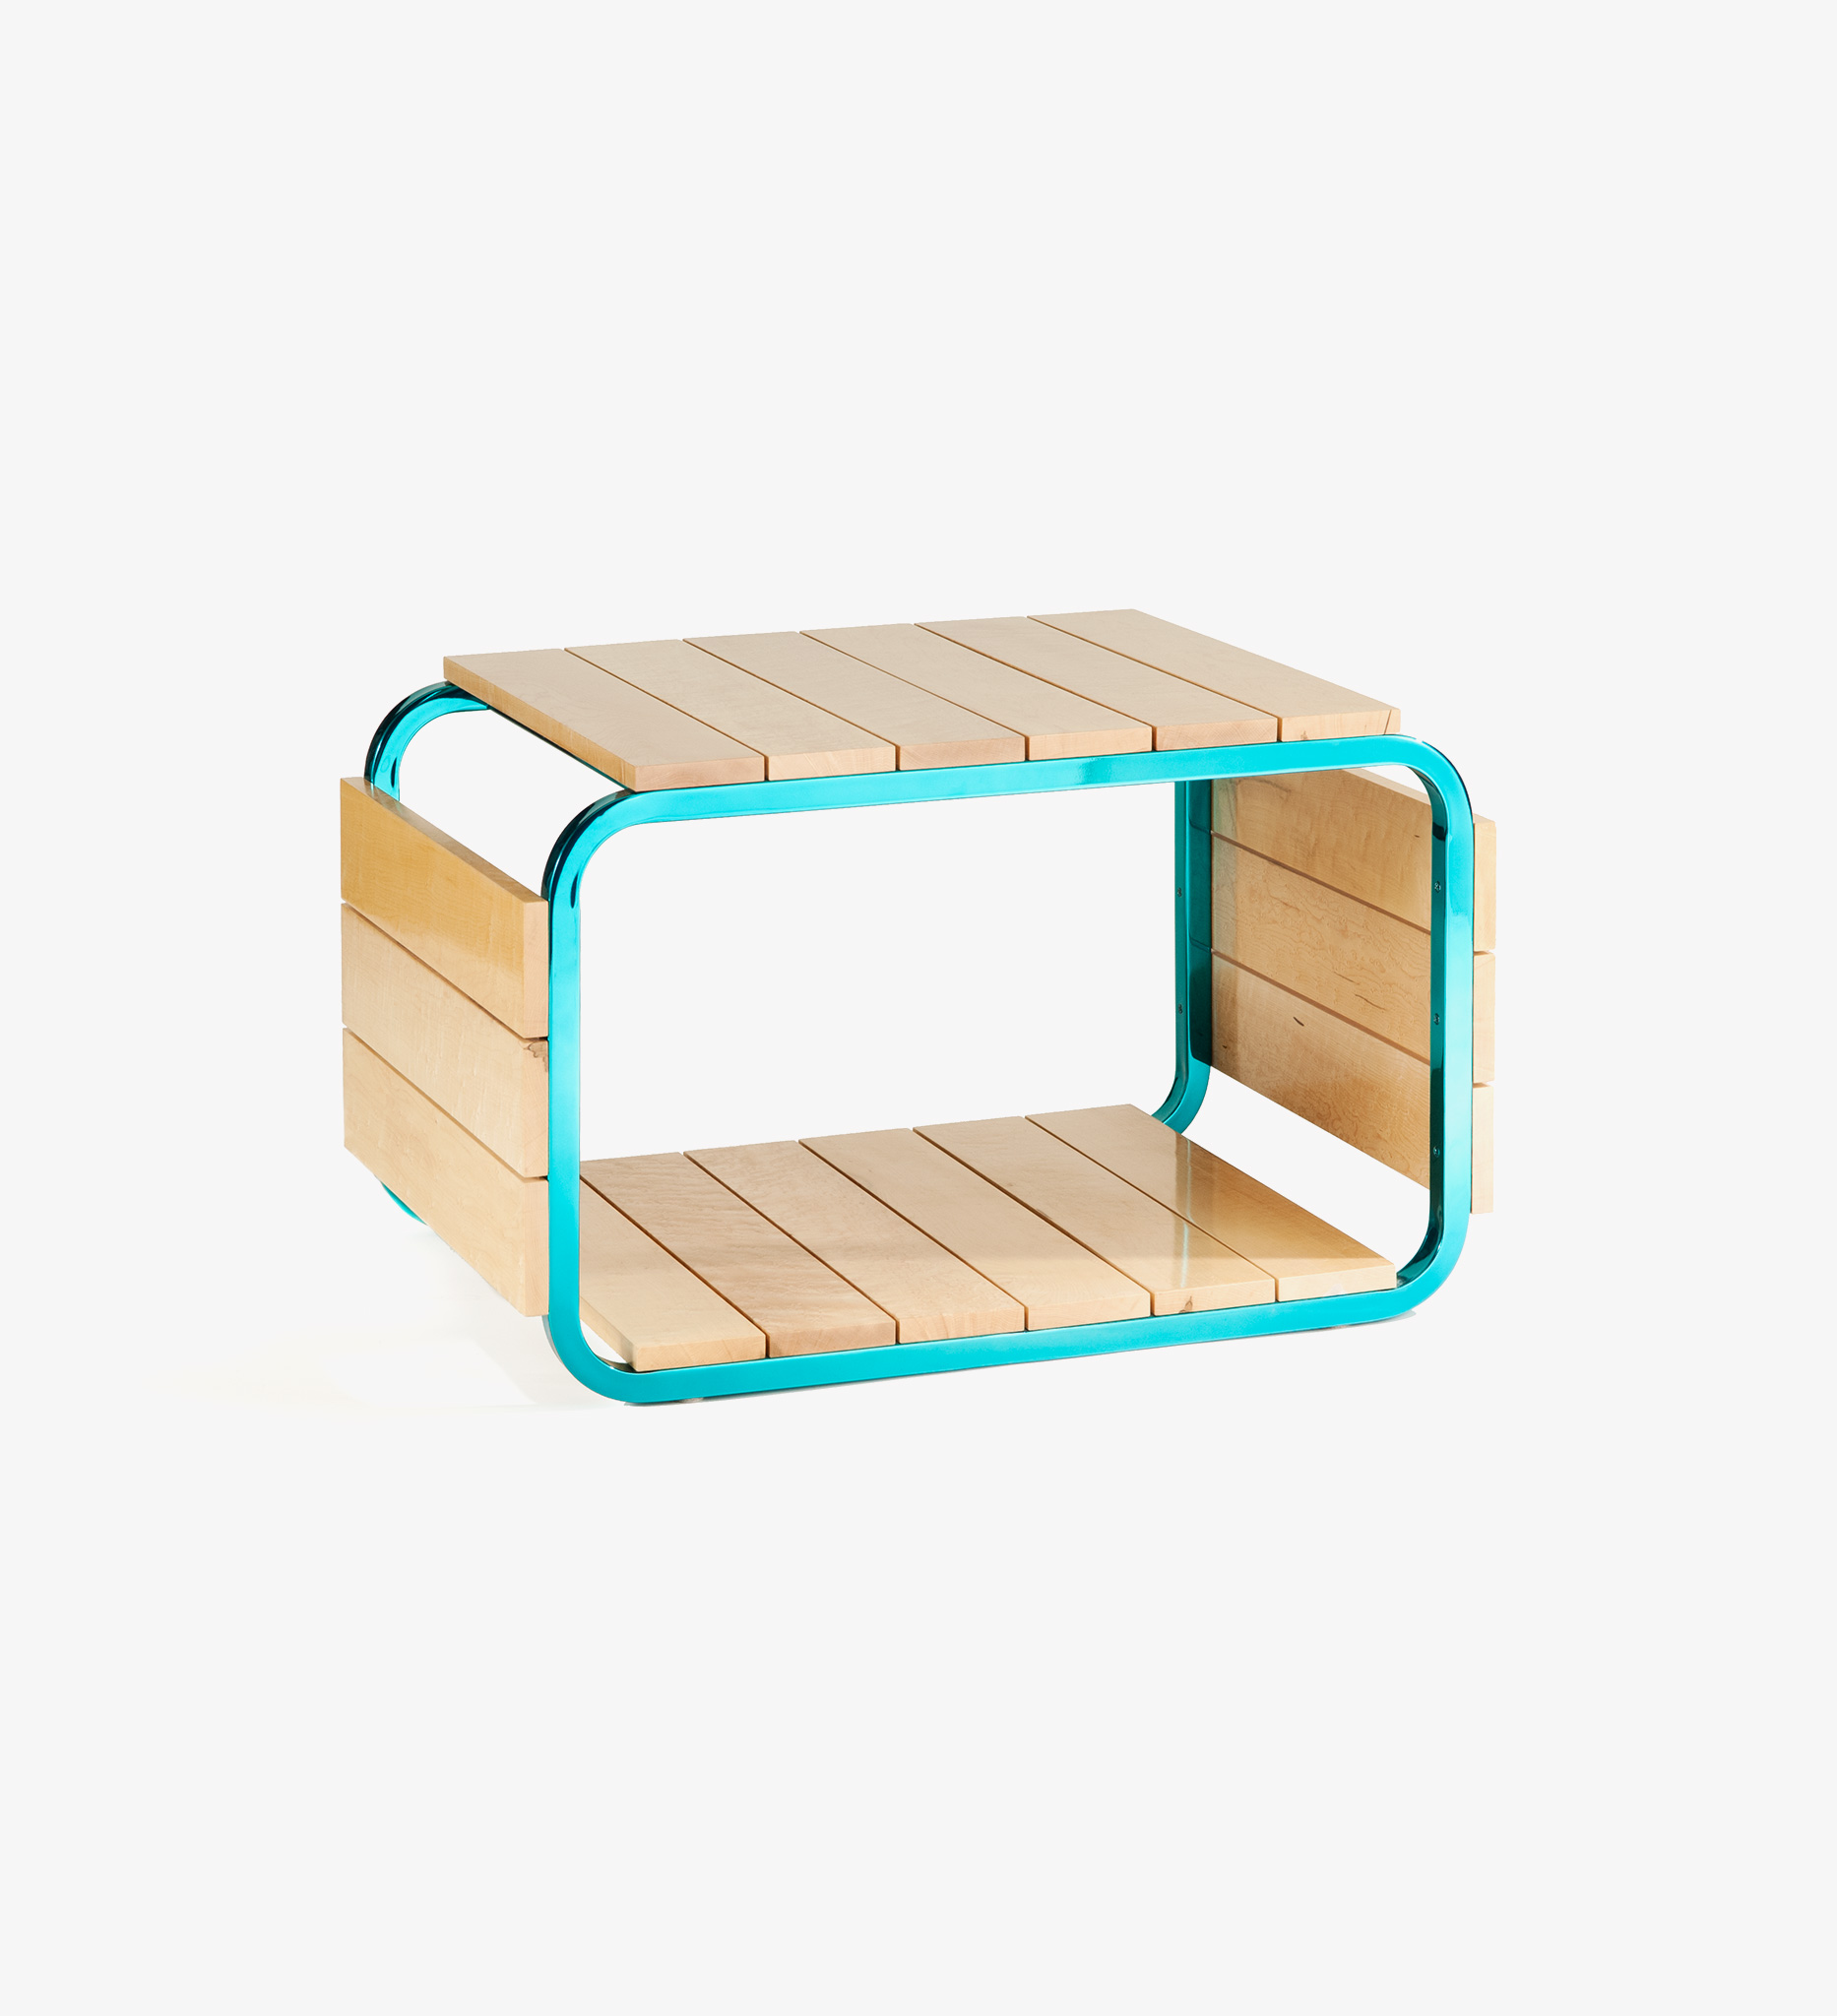 table, bench, Maple, Honey, Steel, Peacock, blue, green, aqua, wood, ladera